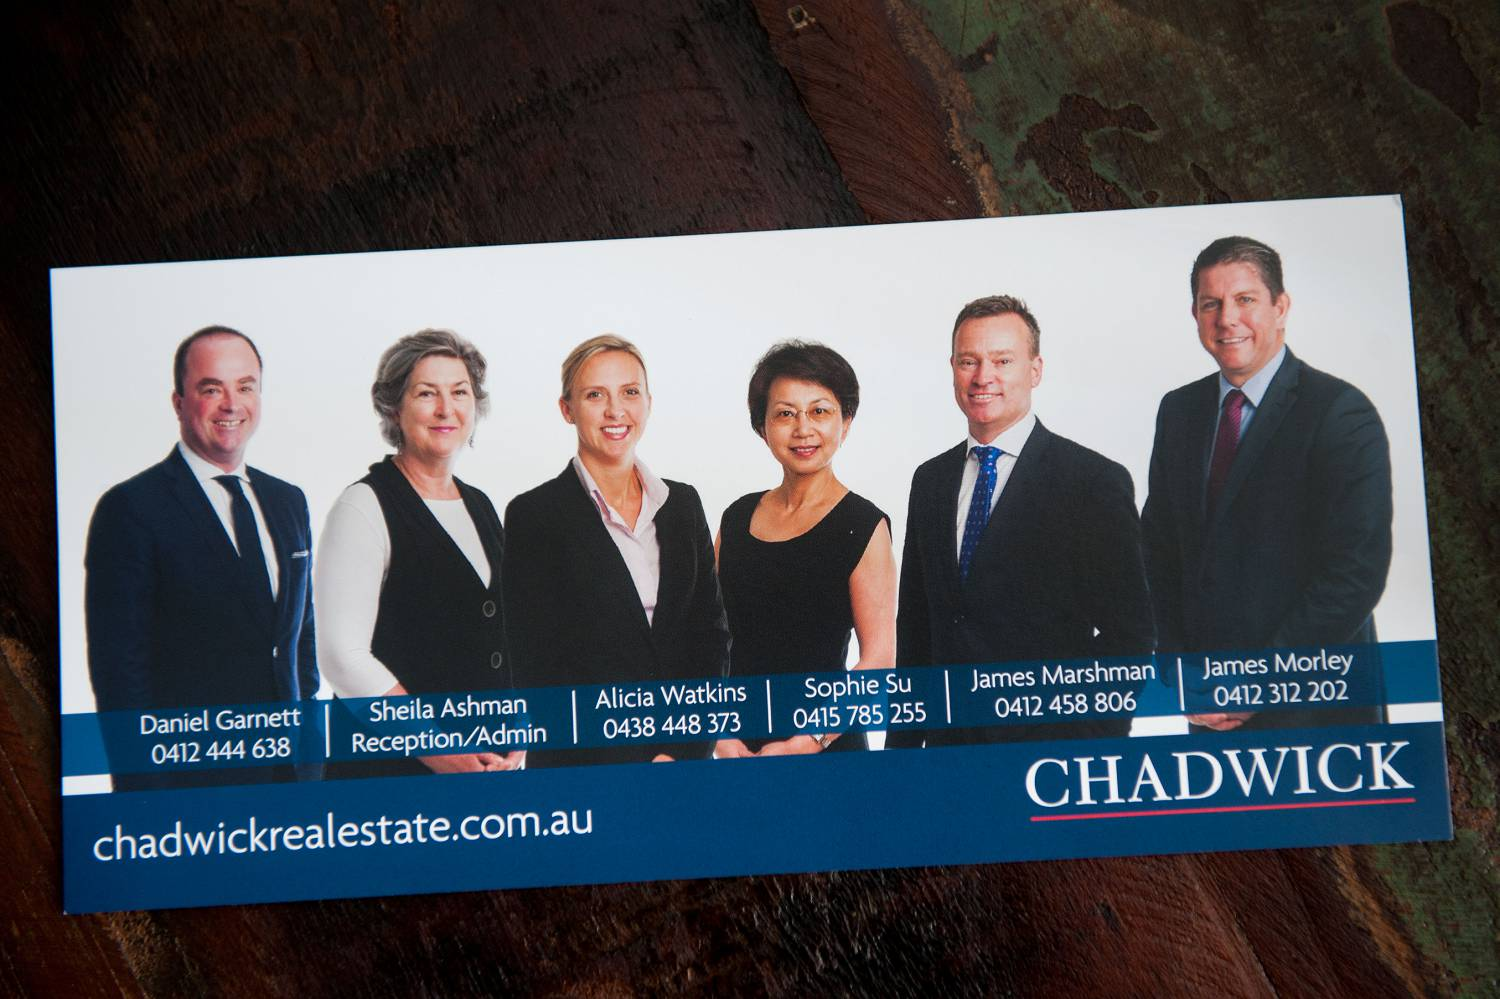 Chadwick Real Estate, Lindfield